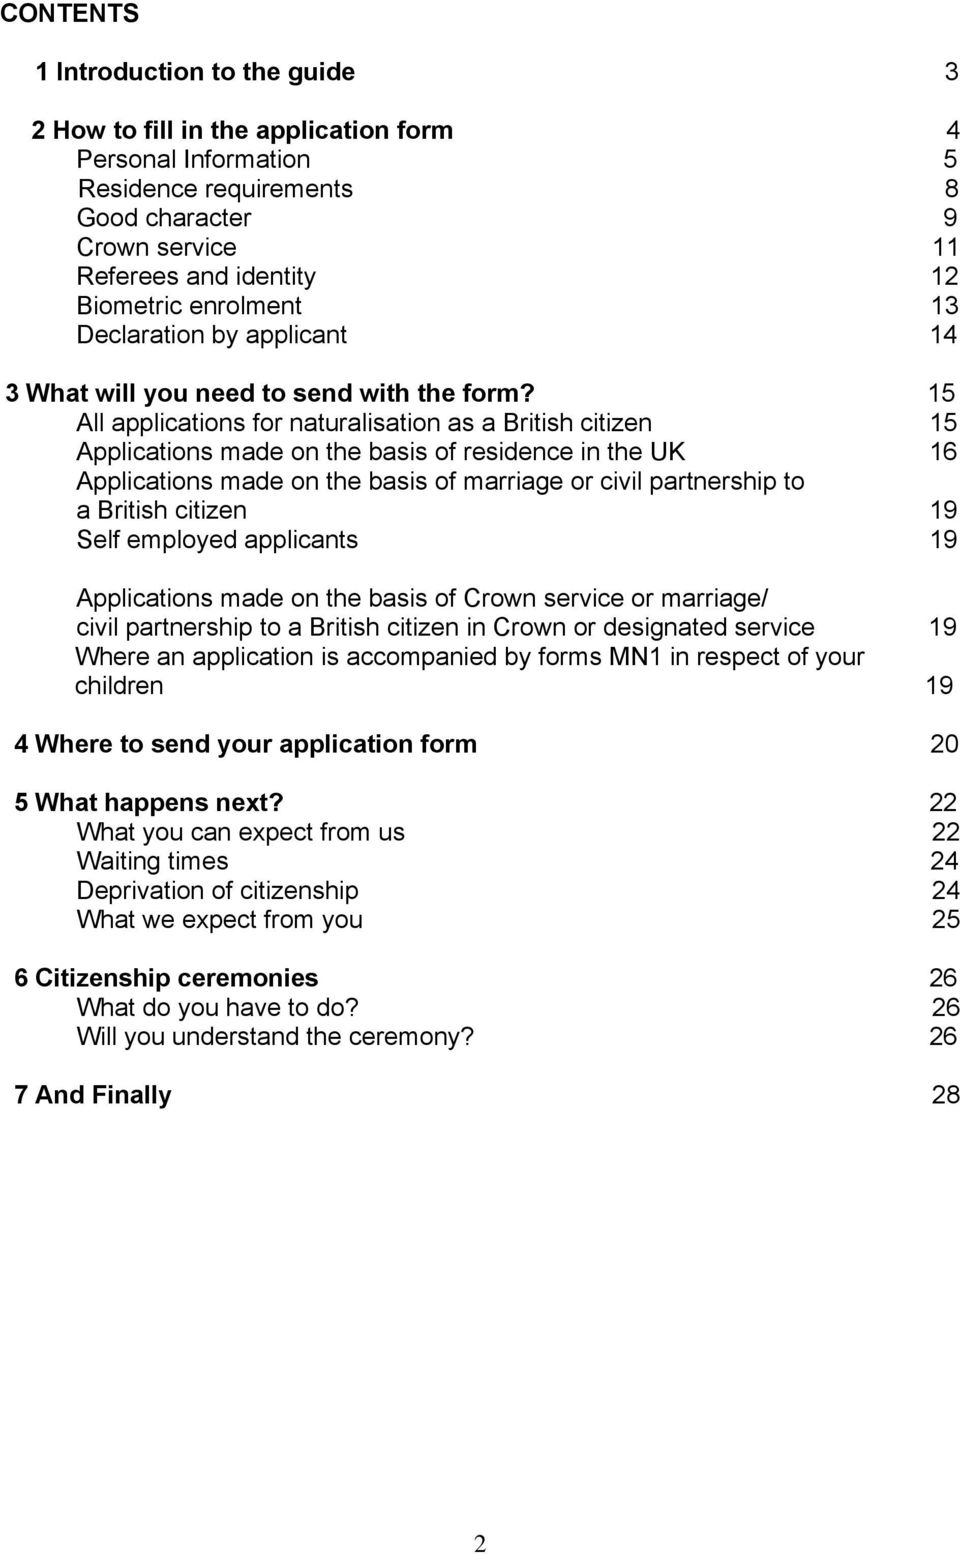 15 All applications for naturalisation as a British citizen 15 Applications made on the basis of residence in the UK 16 Applications made on the basis of marriage or civil partnership to a British